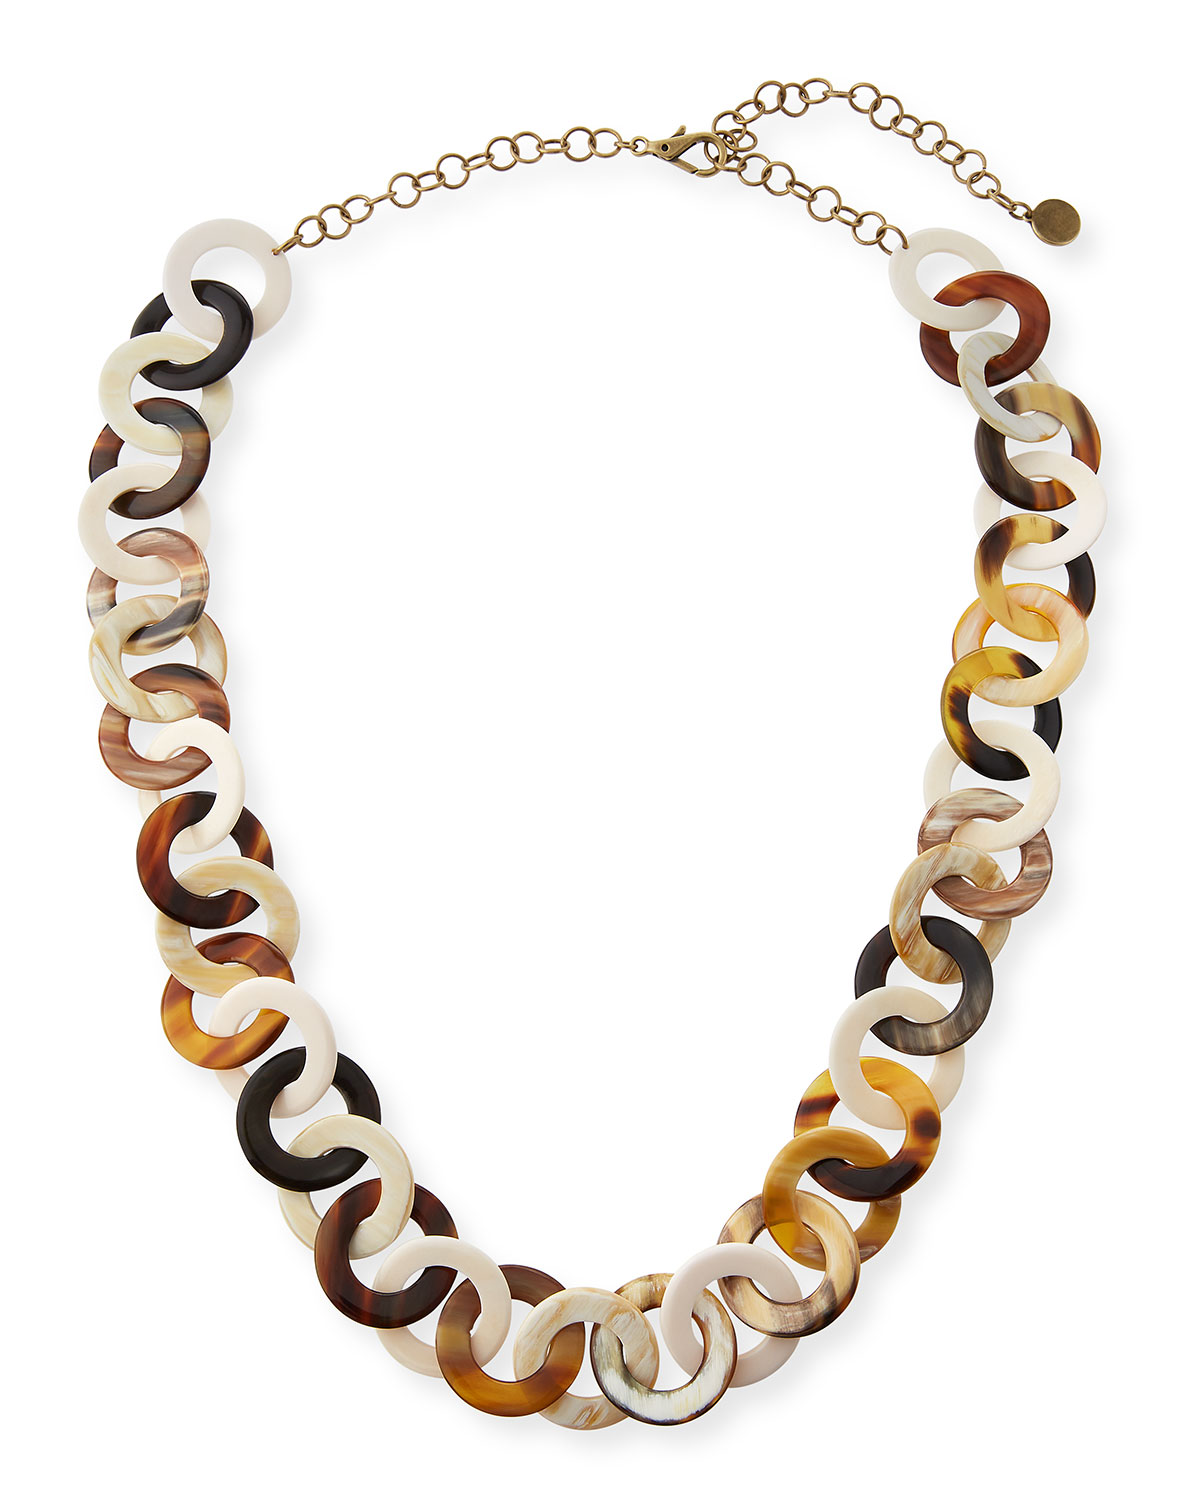 NEST Jewelry 14k Horn & Bone Circle-Link Necklace